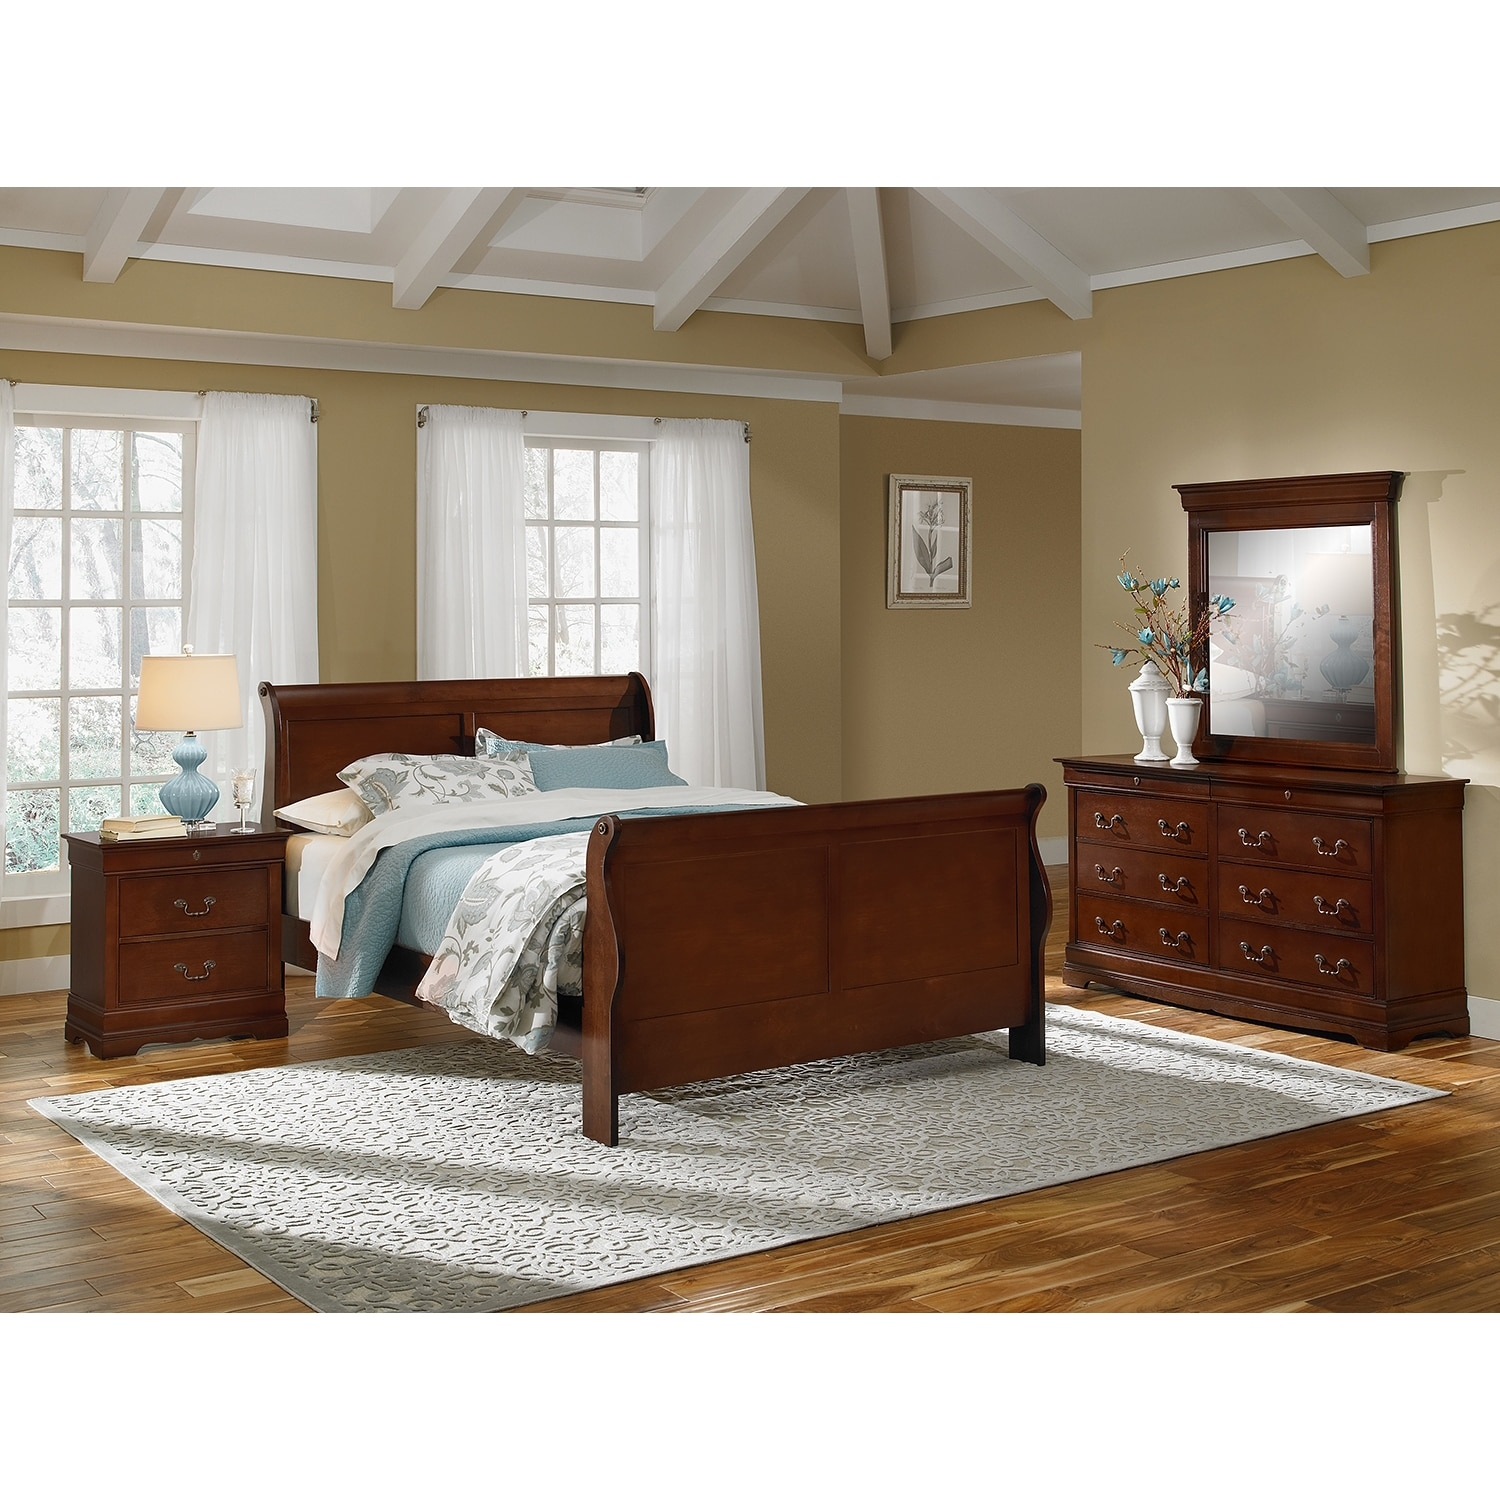 Neo classic 6 piece queen bedroom set cherry value 7 piece queen bedroom furniture sets